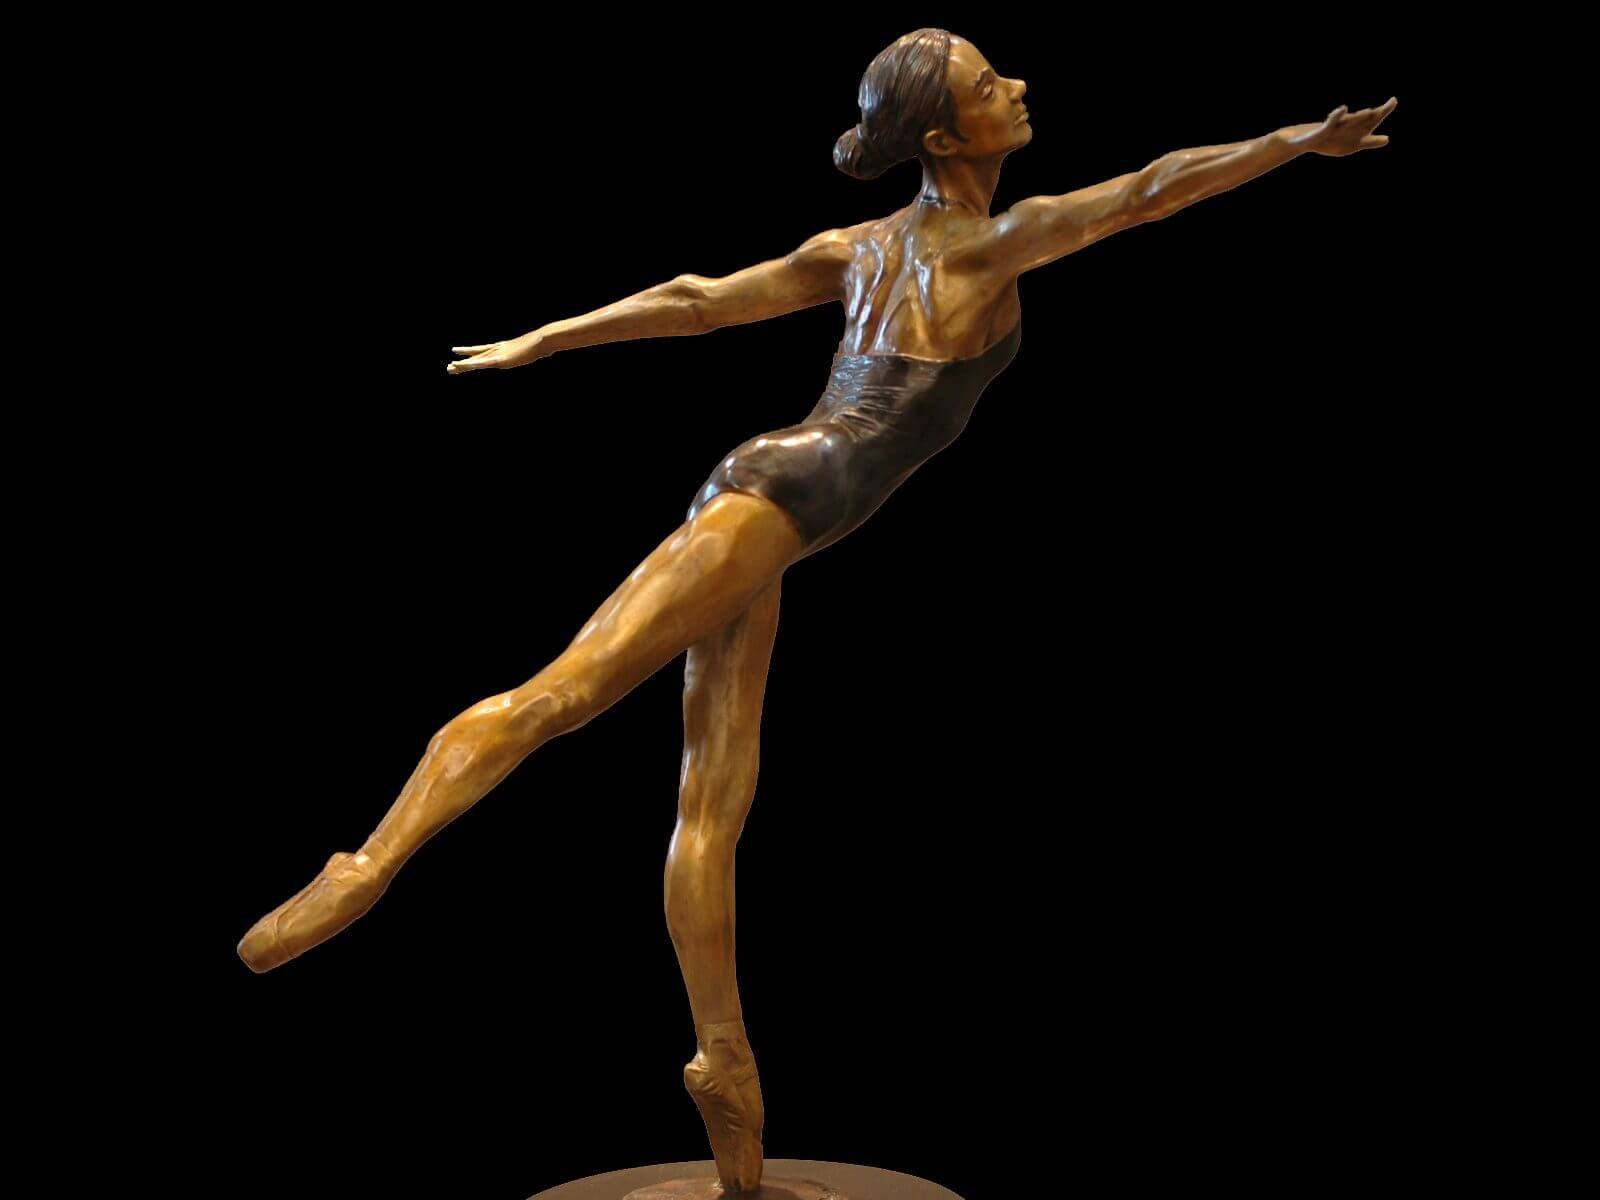 Moment of Grace a bronze female ballet dance sculpture by Andrew DeVries